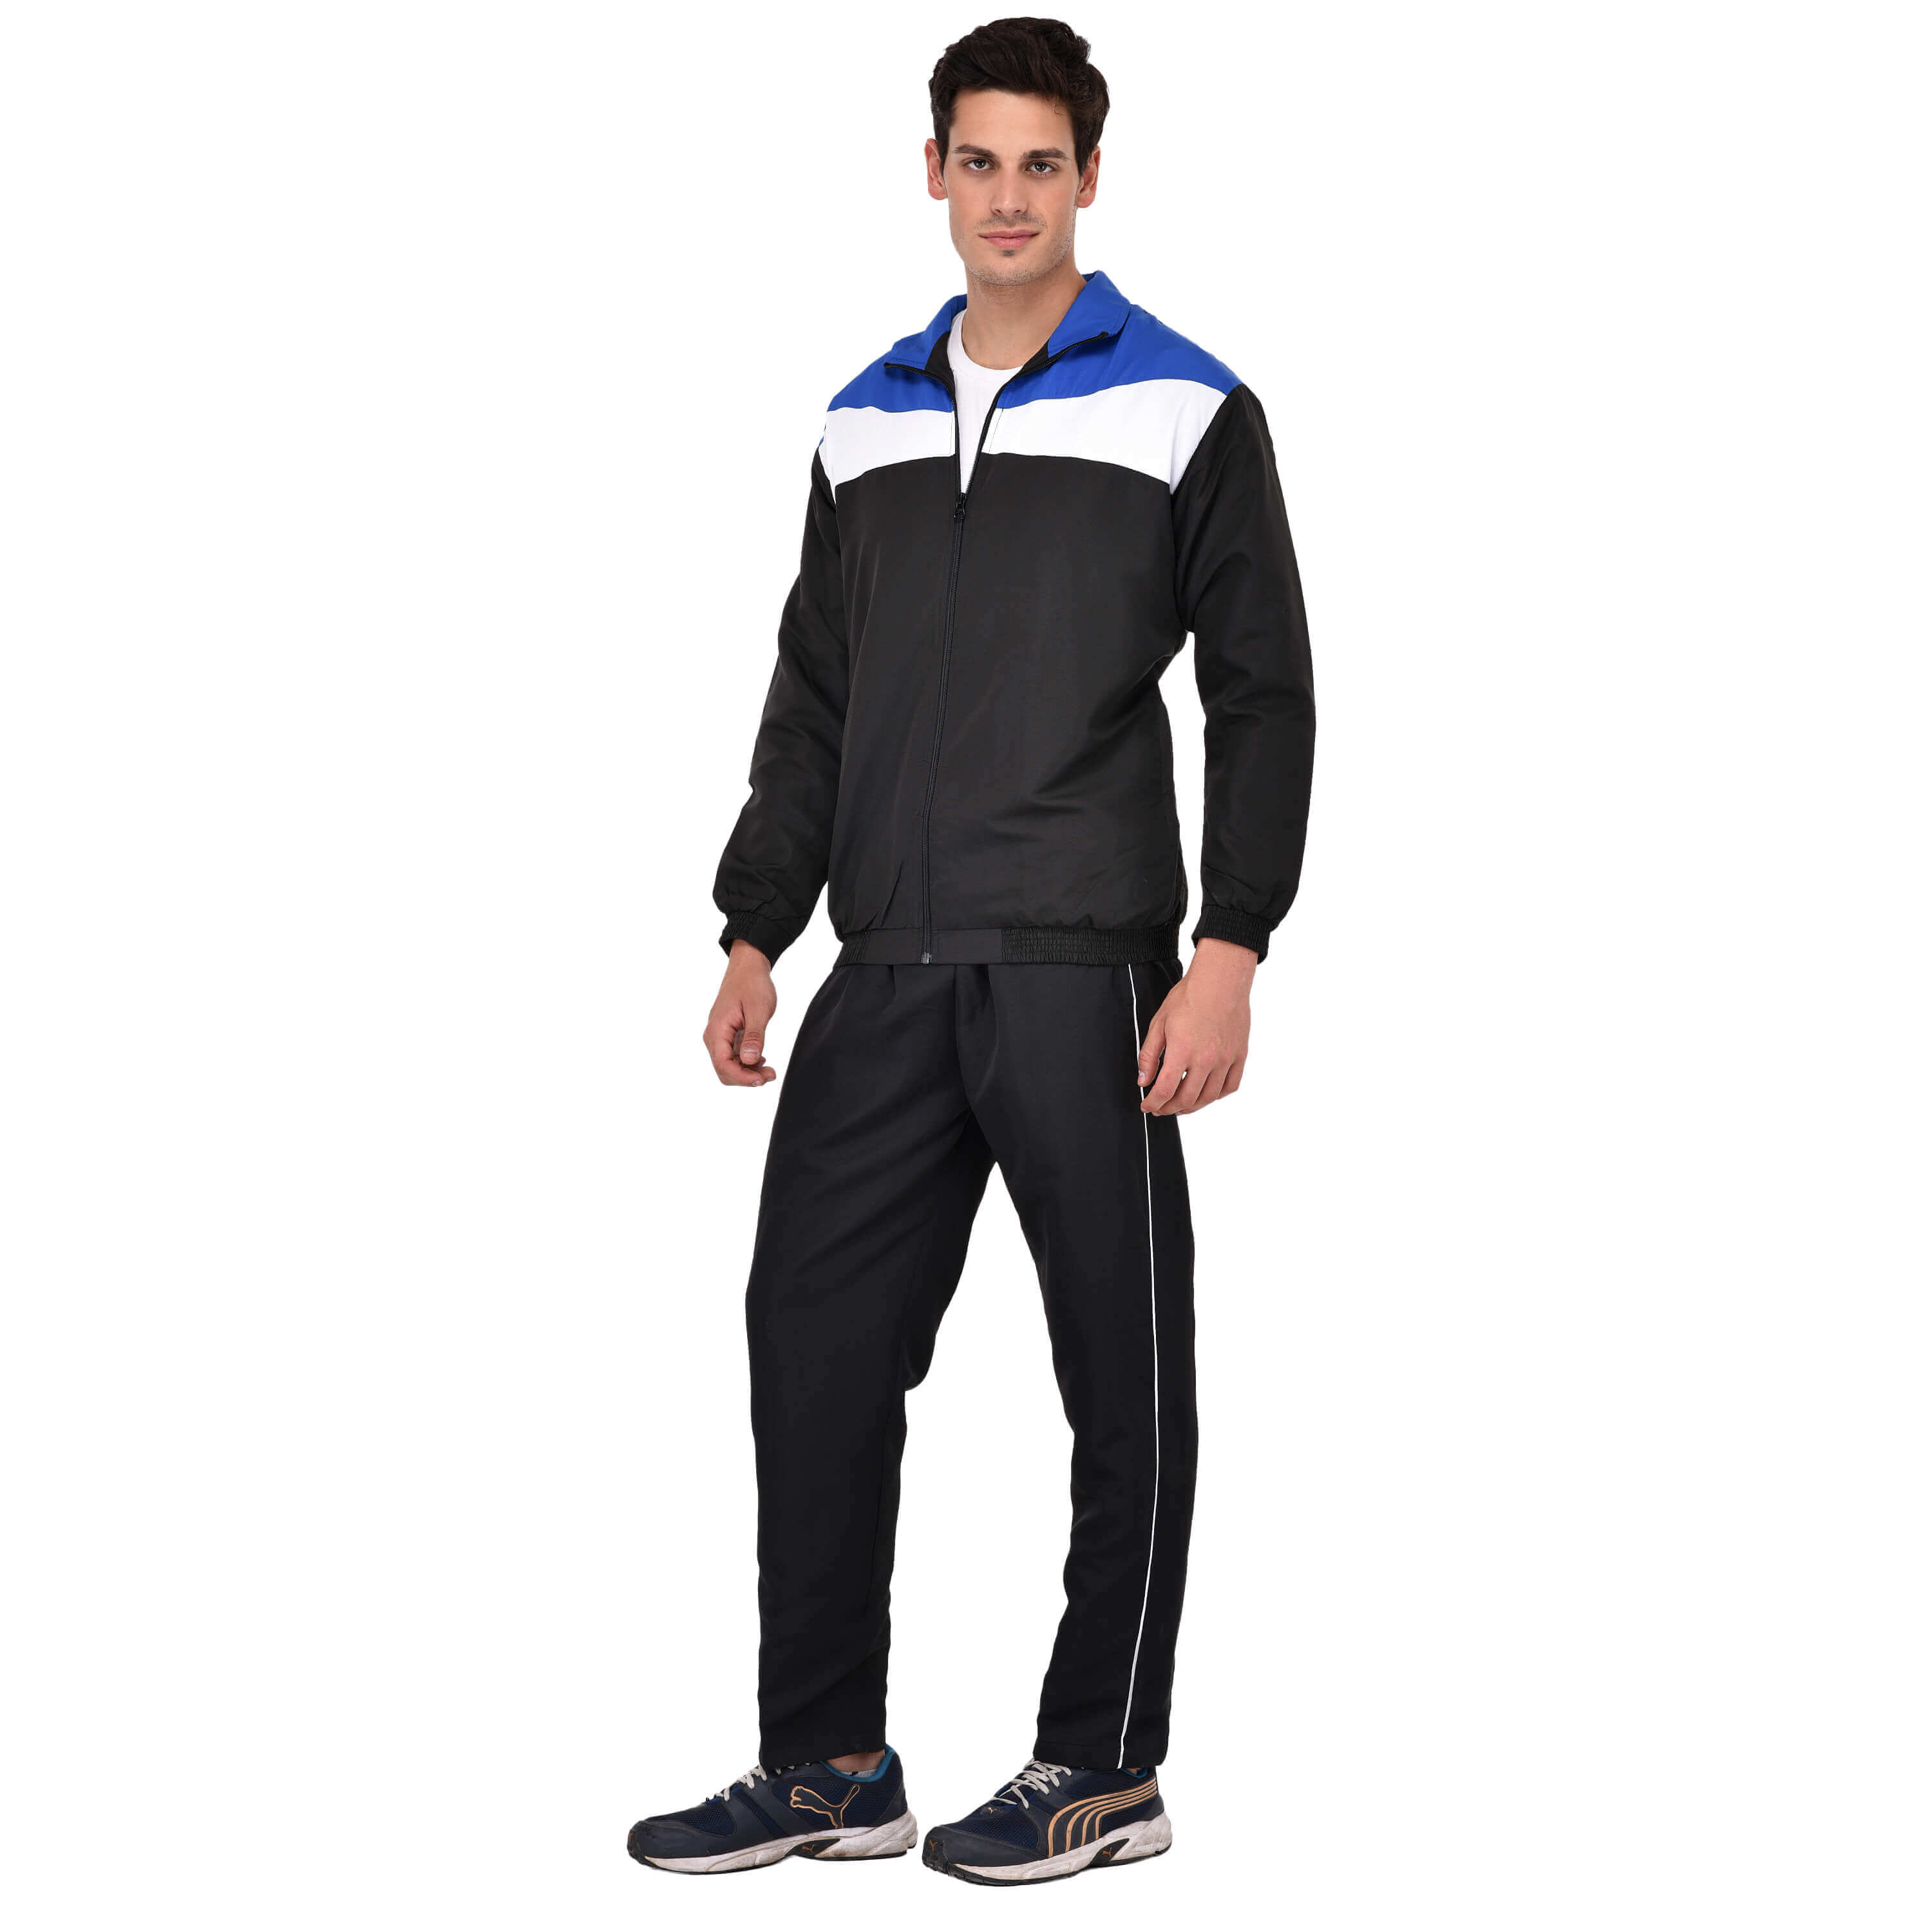 Tracksuit Set Manufacturers in Serbia